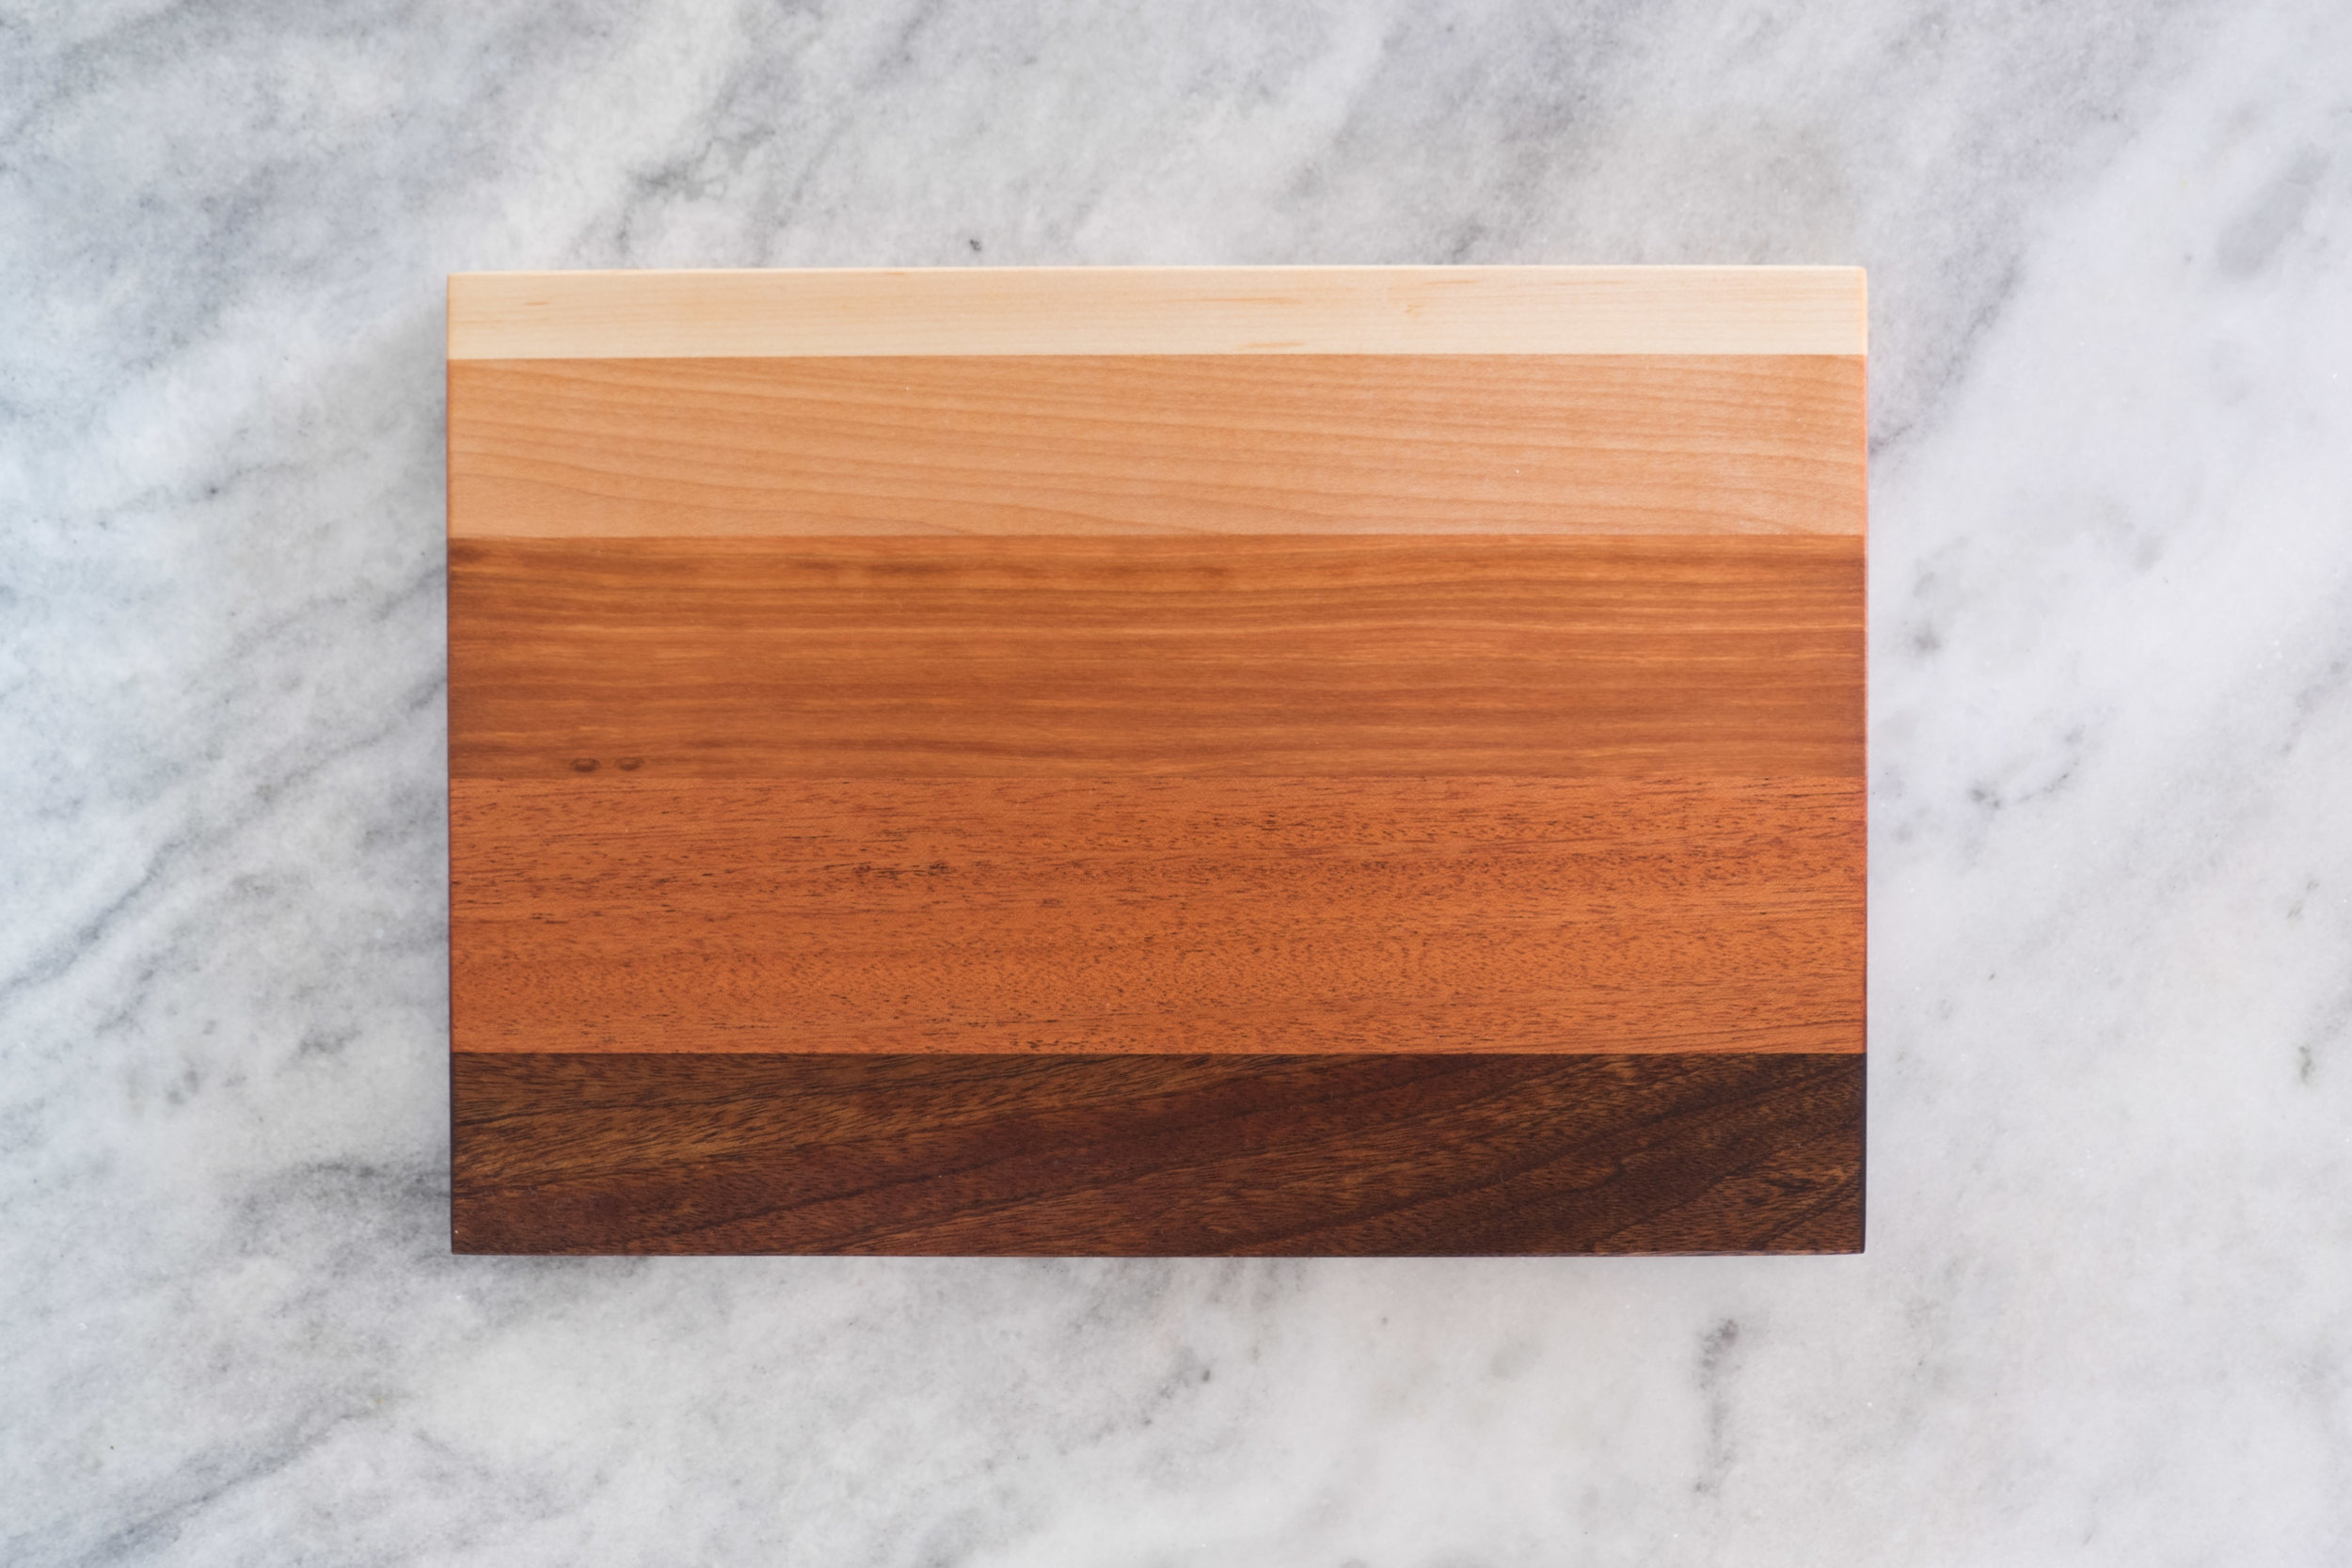 Ombré cheese board